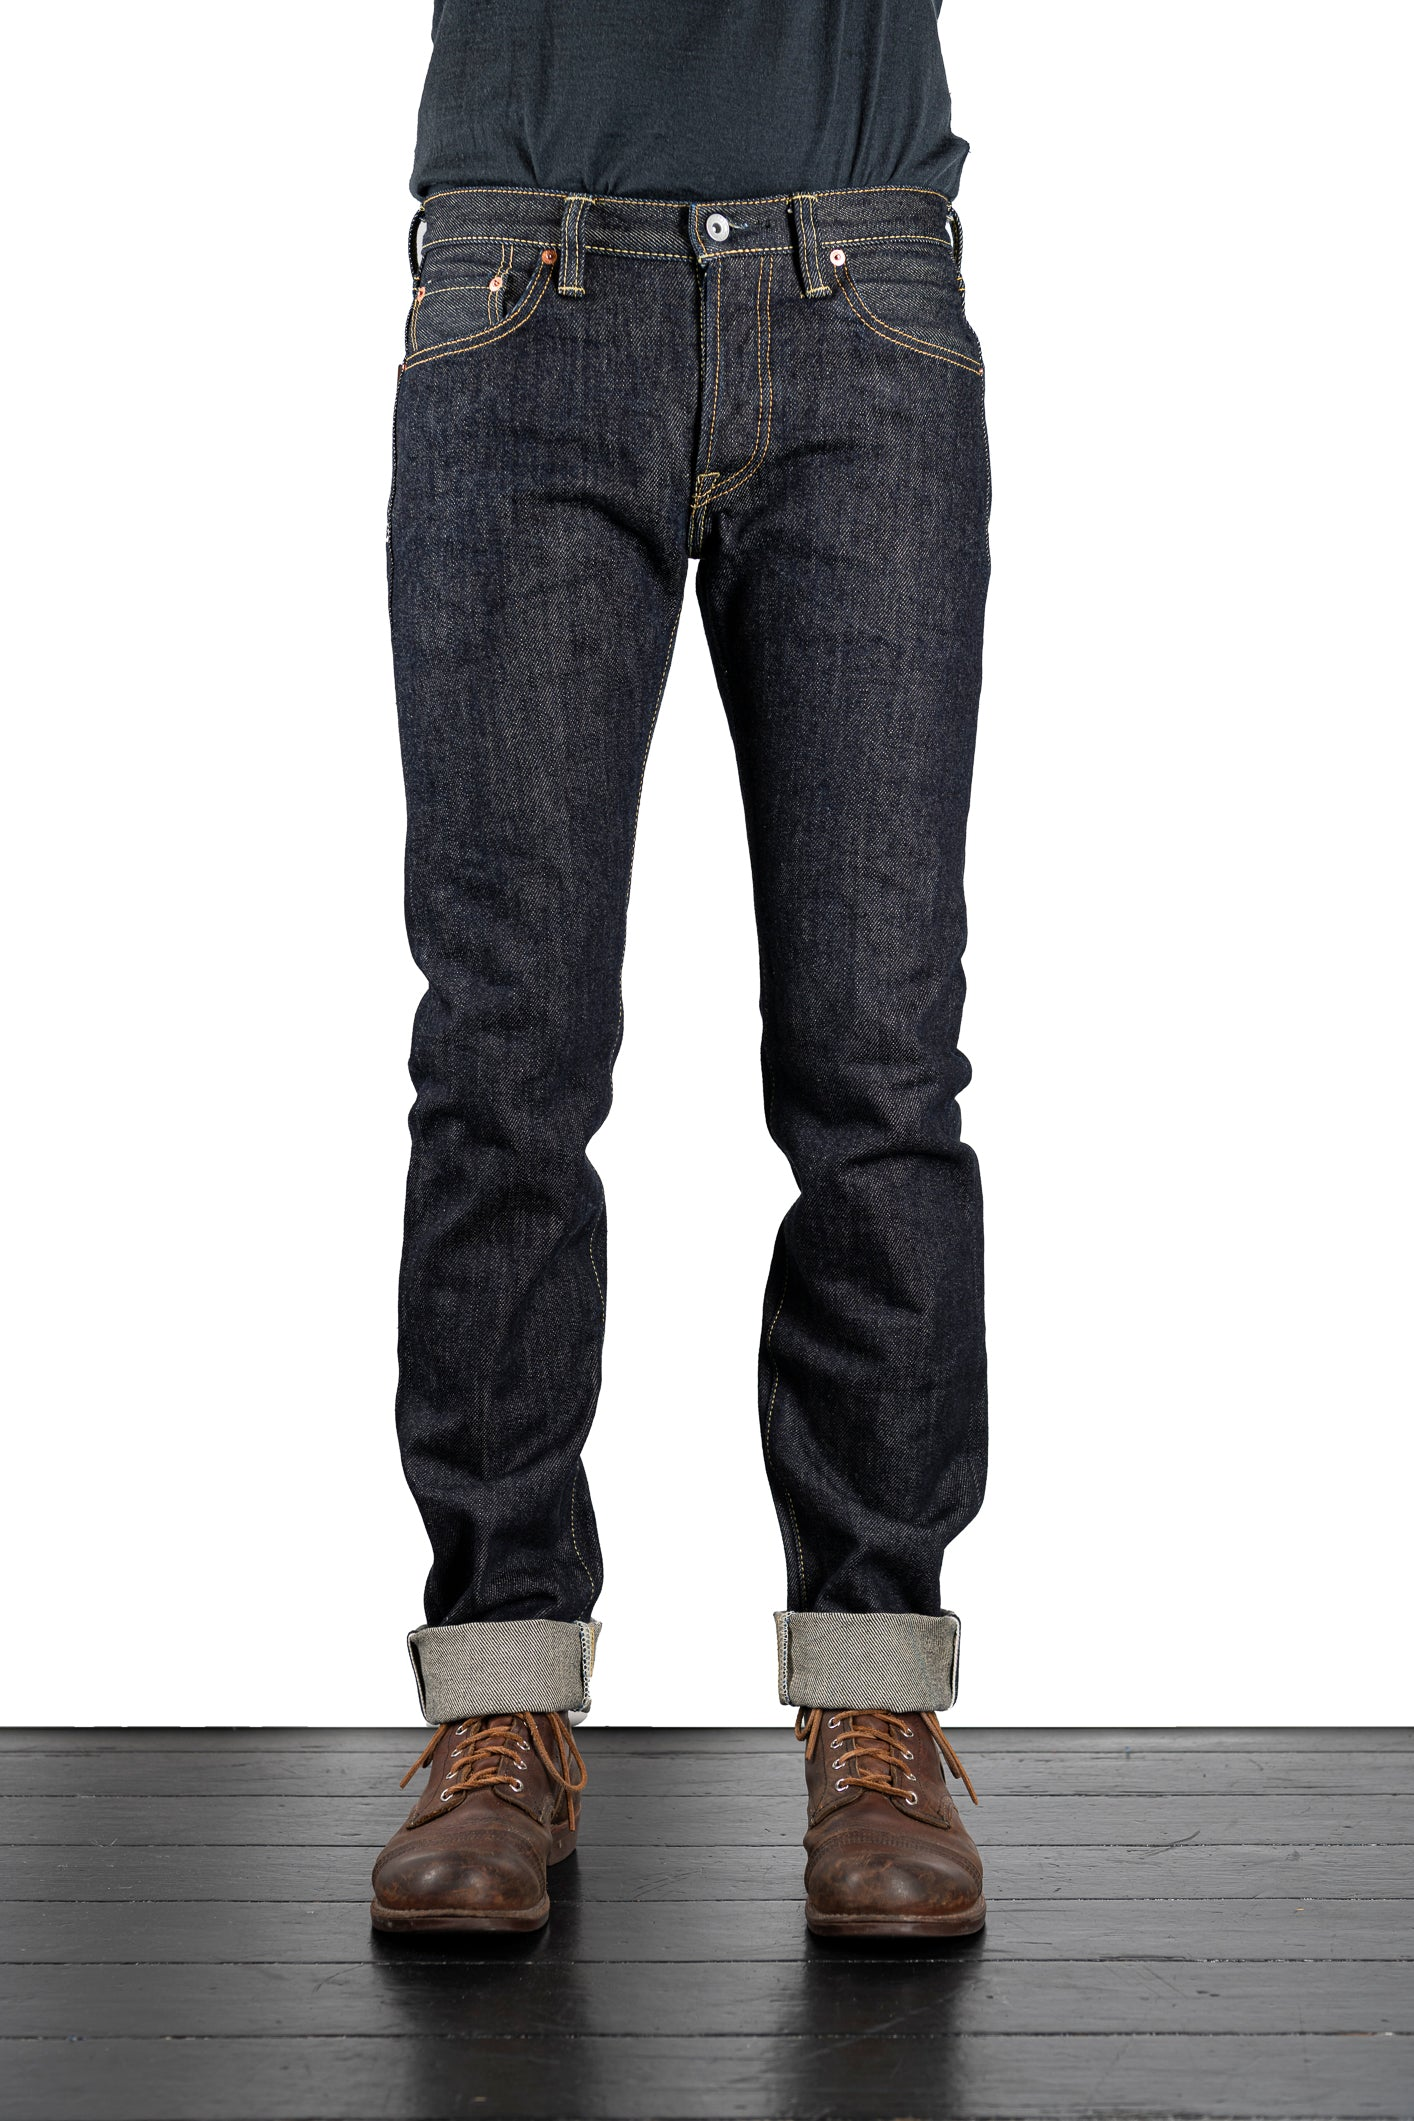 Iron Heart - 777S Indigo 21oz